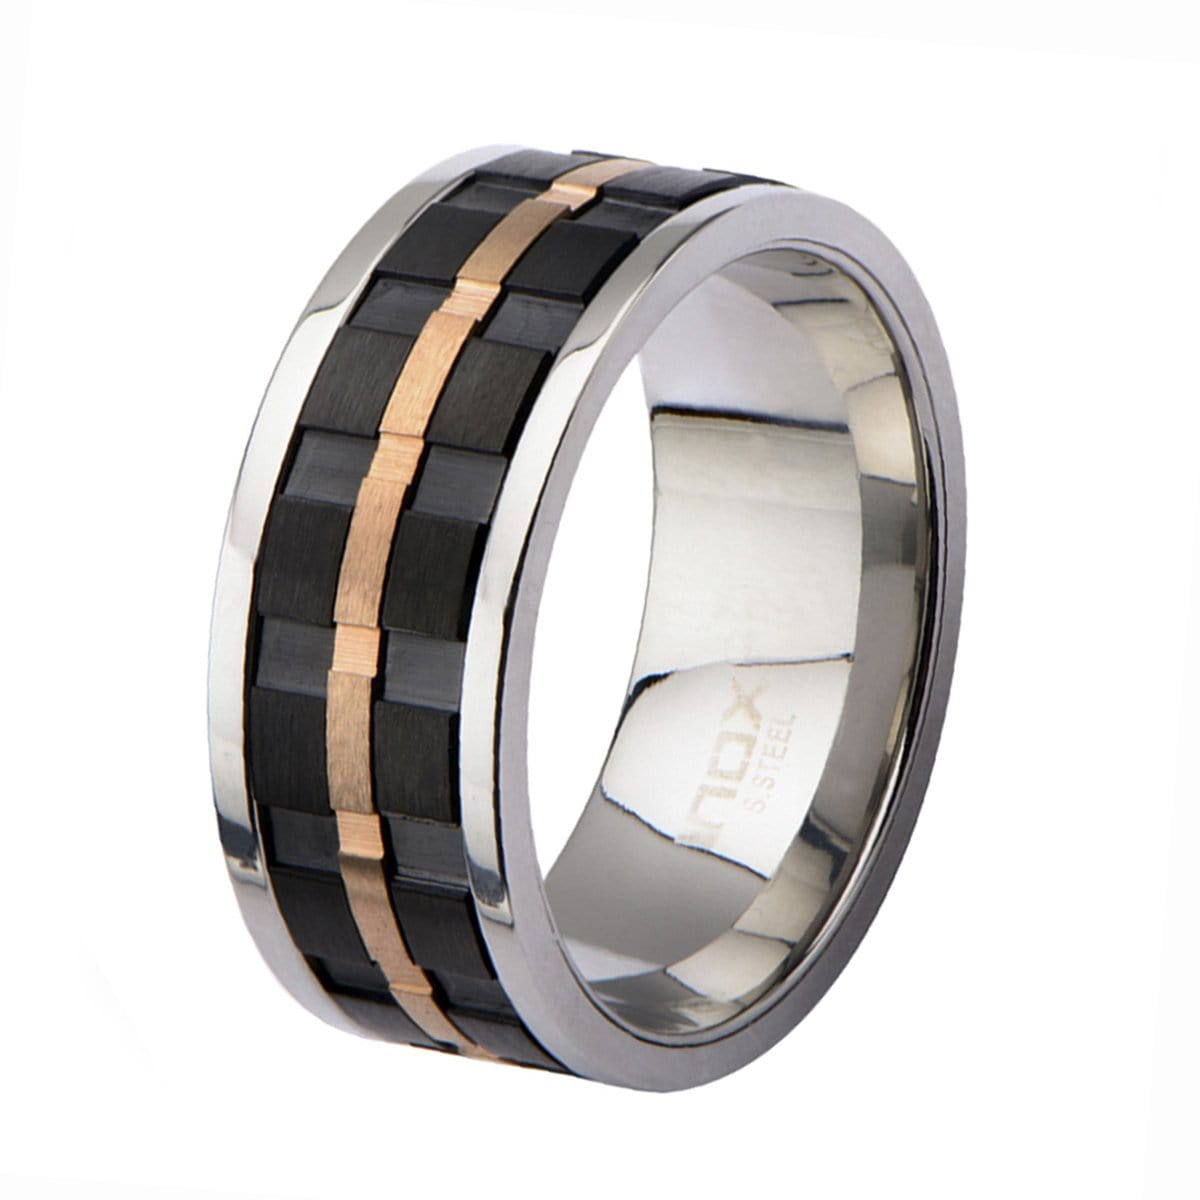 Rose Gold, Black, & Silver Stainless Steel Ridged Stripe Spinner Ring - Inox Jewelry India